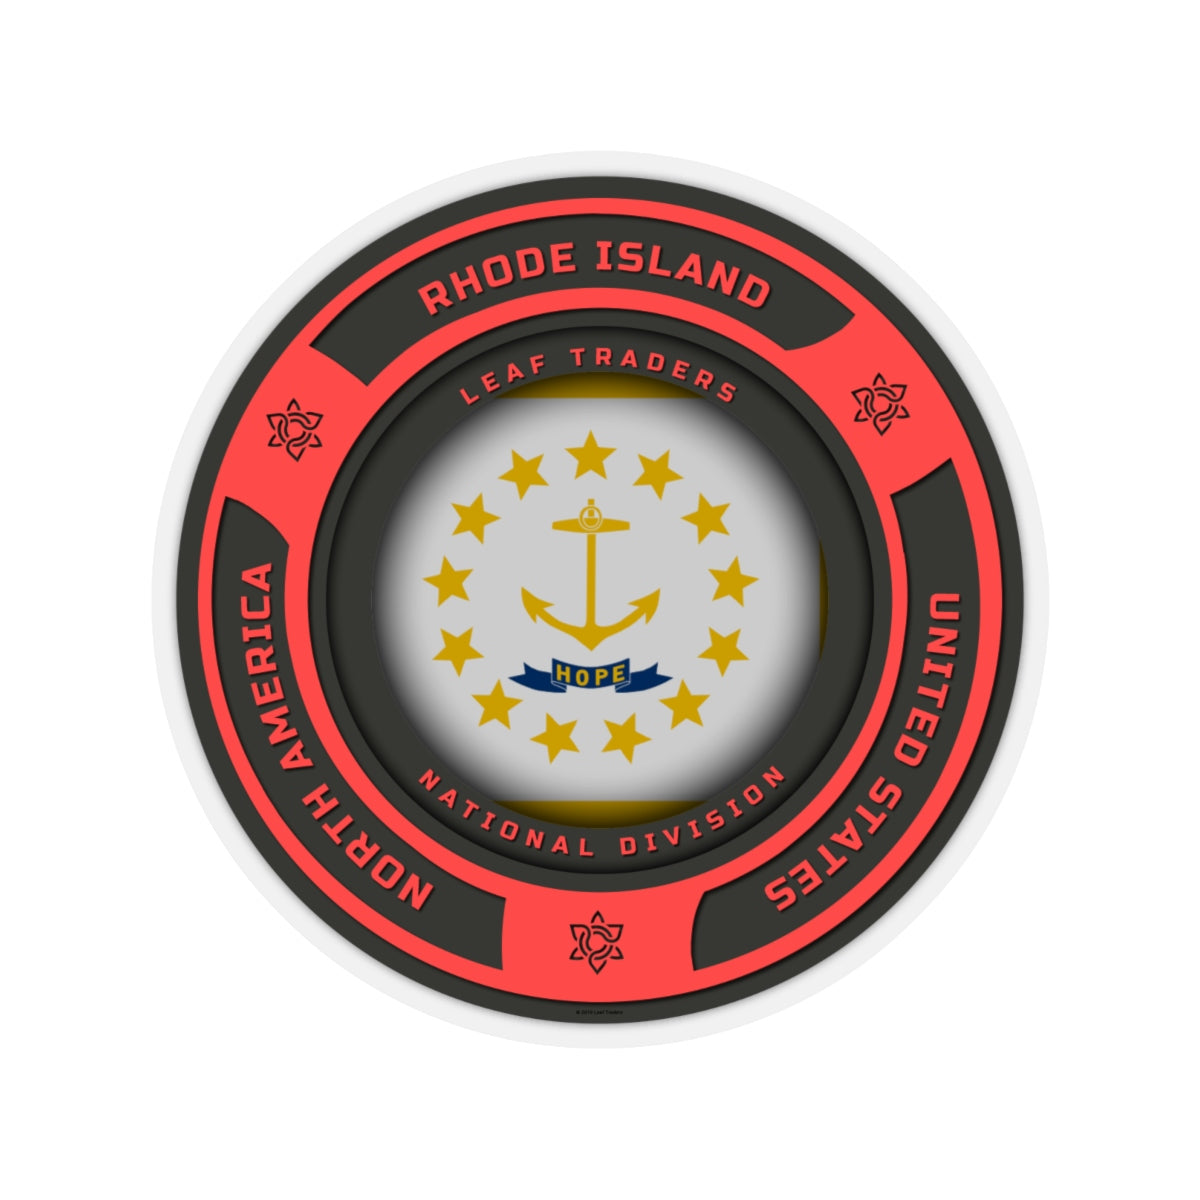 Rhode Island | Leaf Traders Region Badge